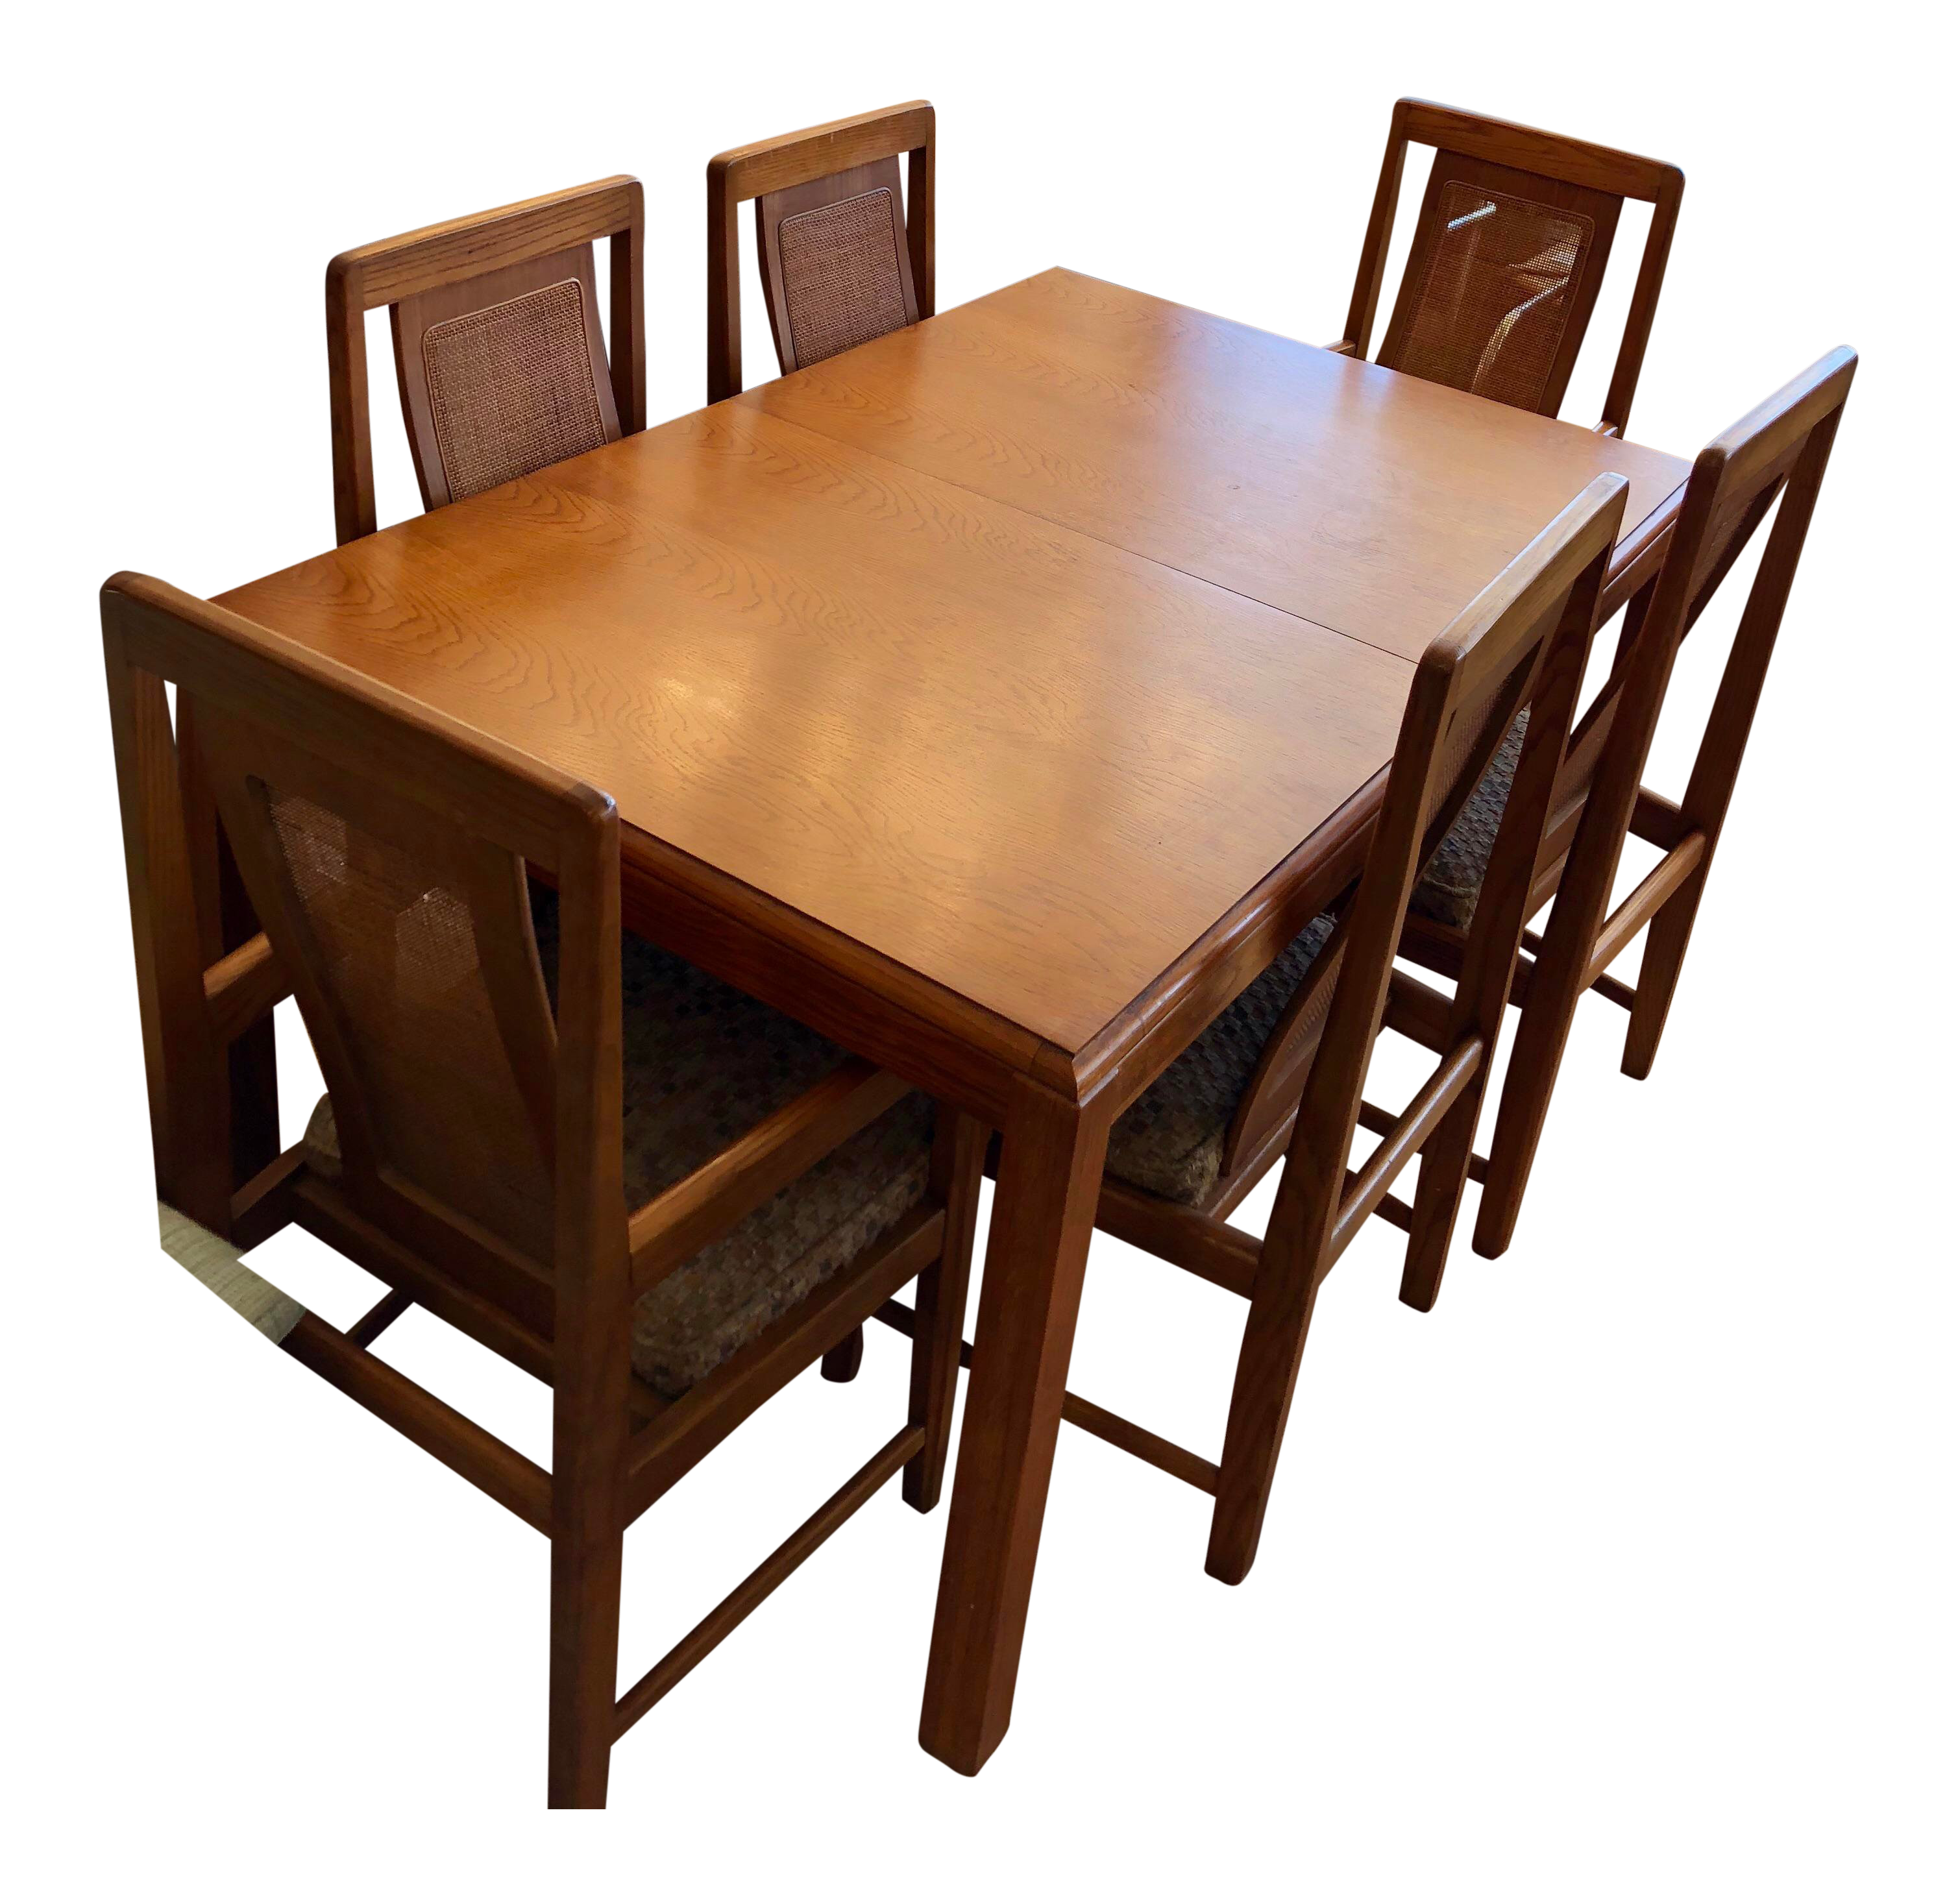 Pleasing 1970S Sears Roebuck Oak Dining Table With 6 Chairs Squirreltailoven Fun Painted Chair Ideas Images Squirreltailovenorg